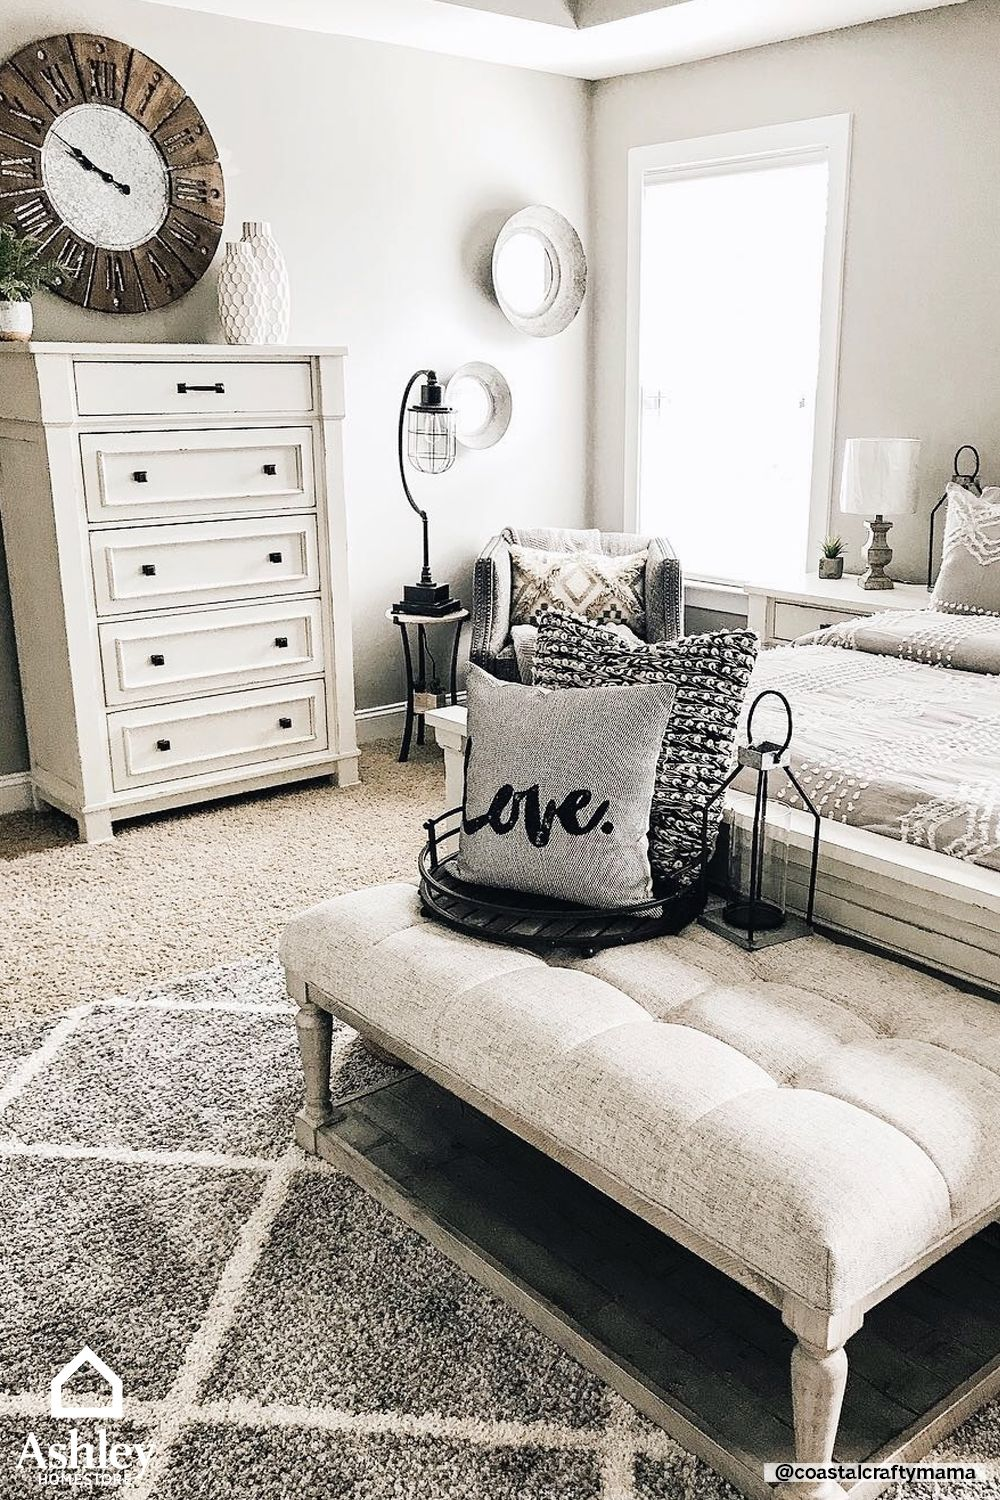 This light and airy farmhouse style bedroom is giving me some serious envy!